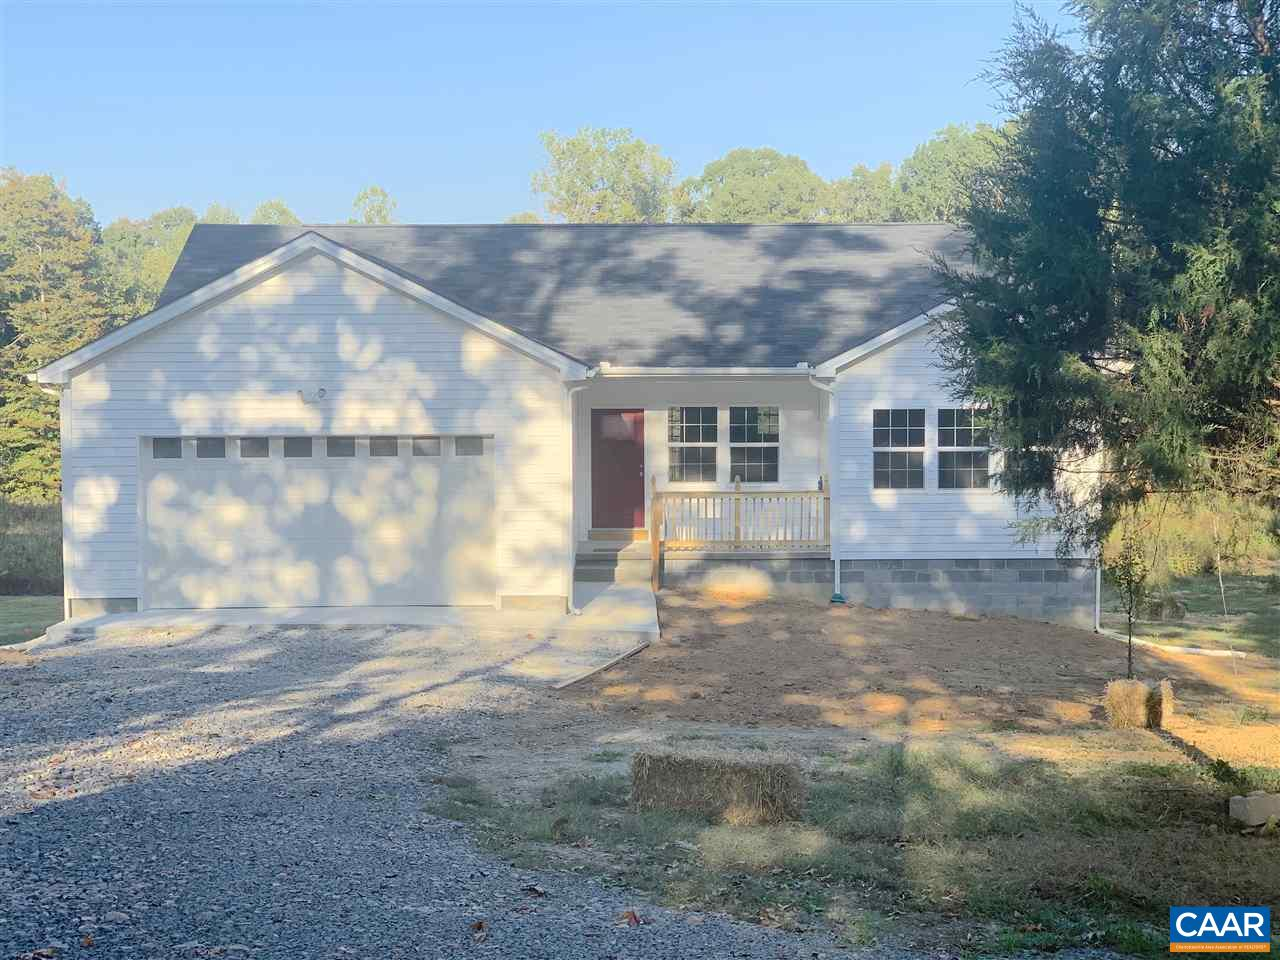 home for sale , MLS #594186, 3174 Yanceyville Rd